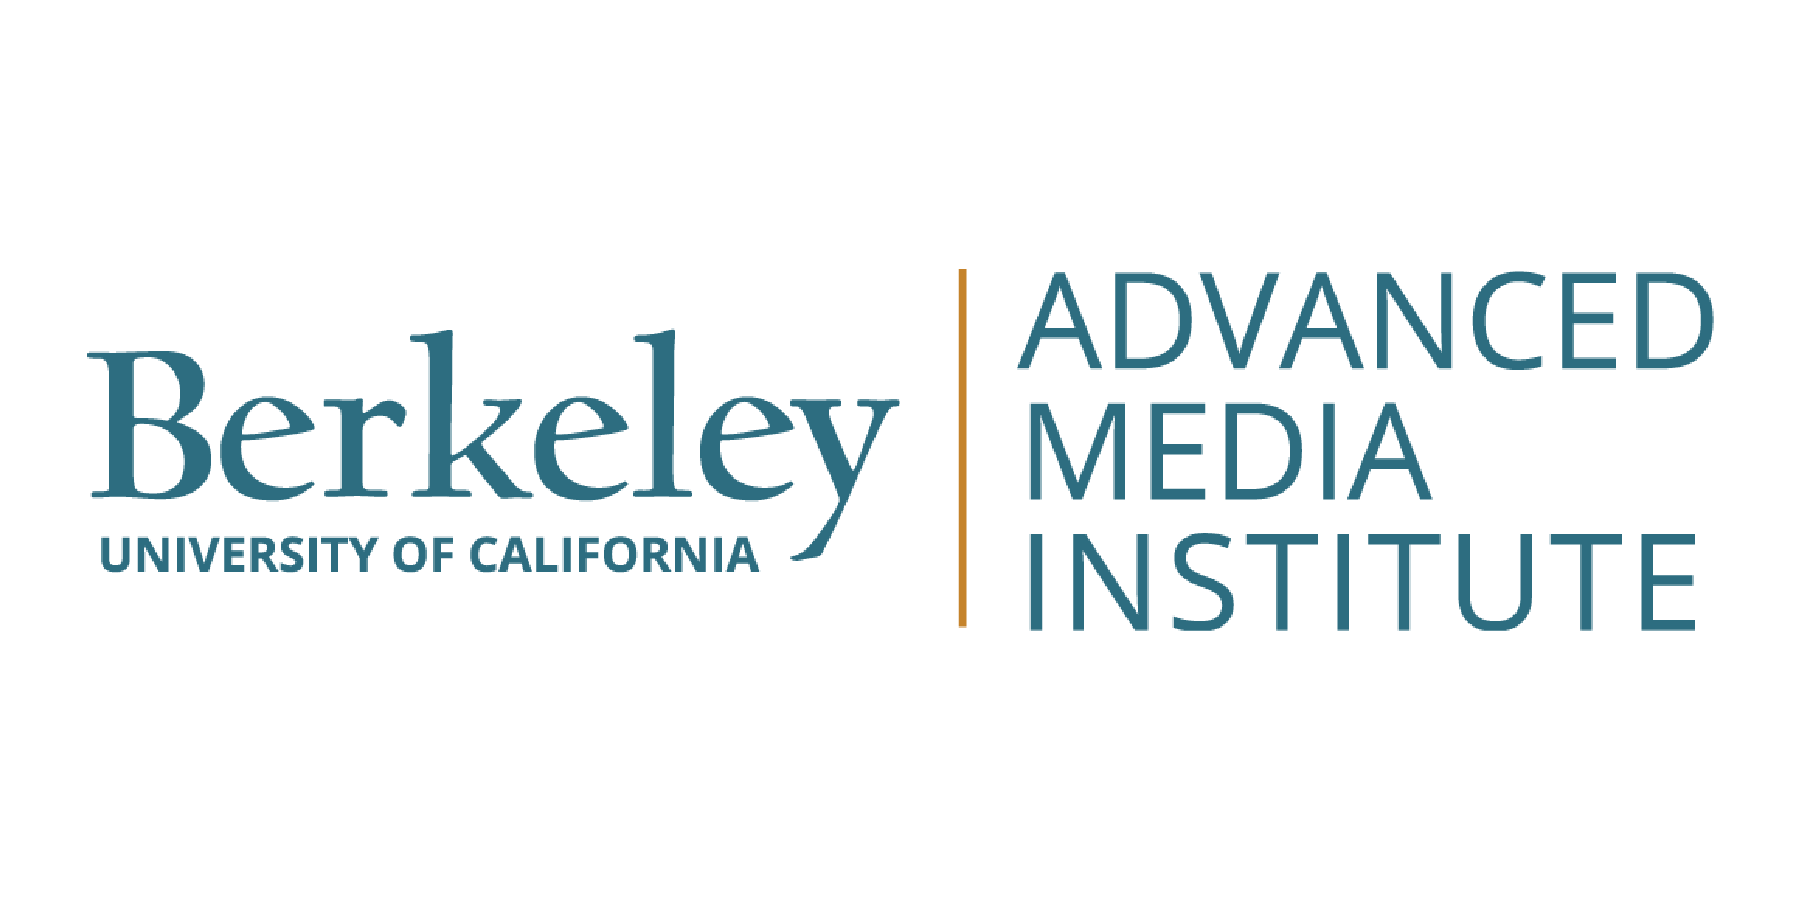 Berkeley Advanced Media Institute